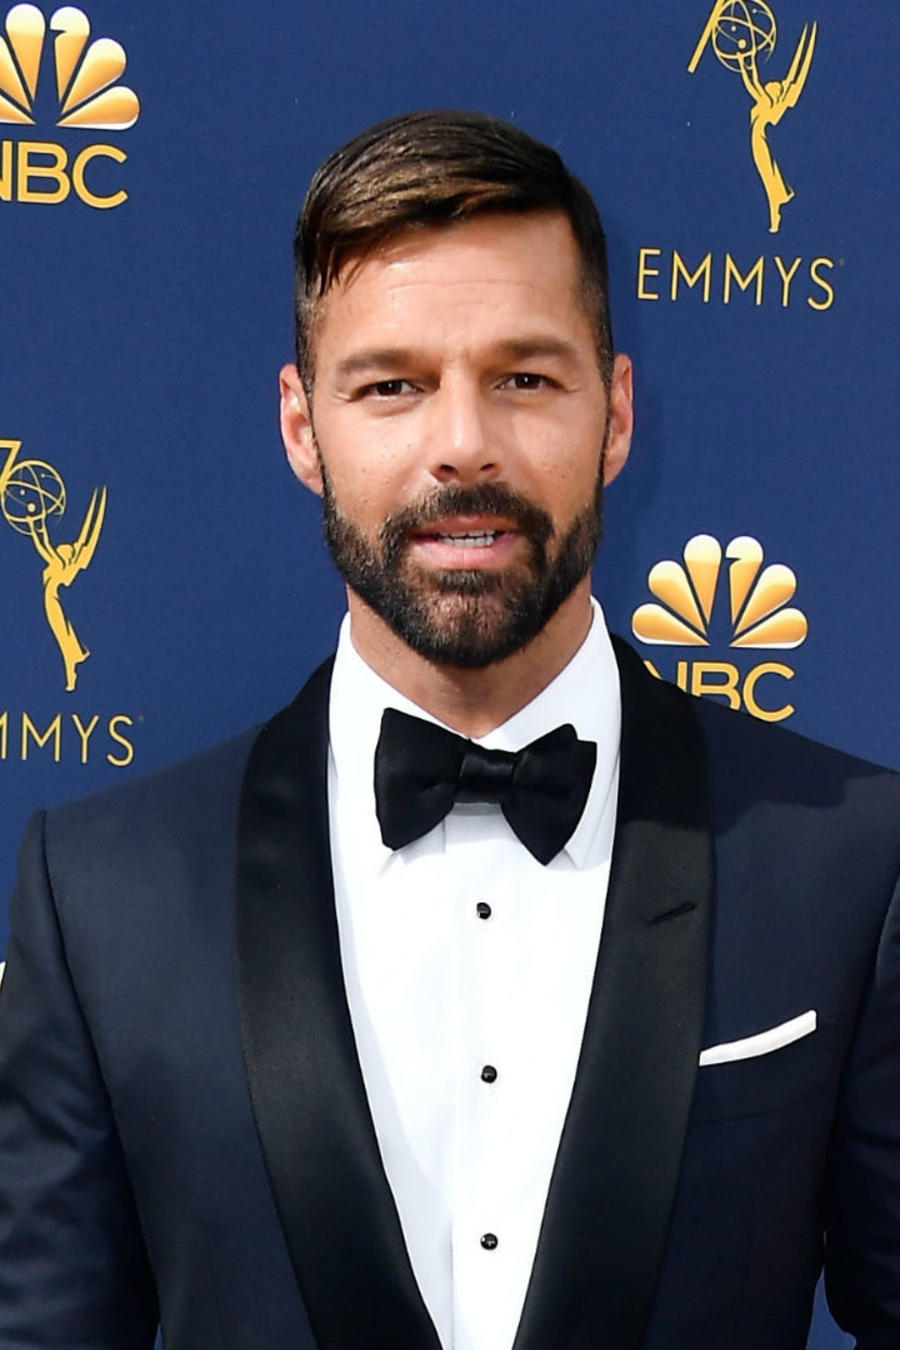 Ricky Martin en Emmy Awards 2018